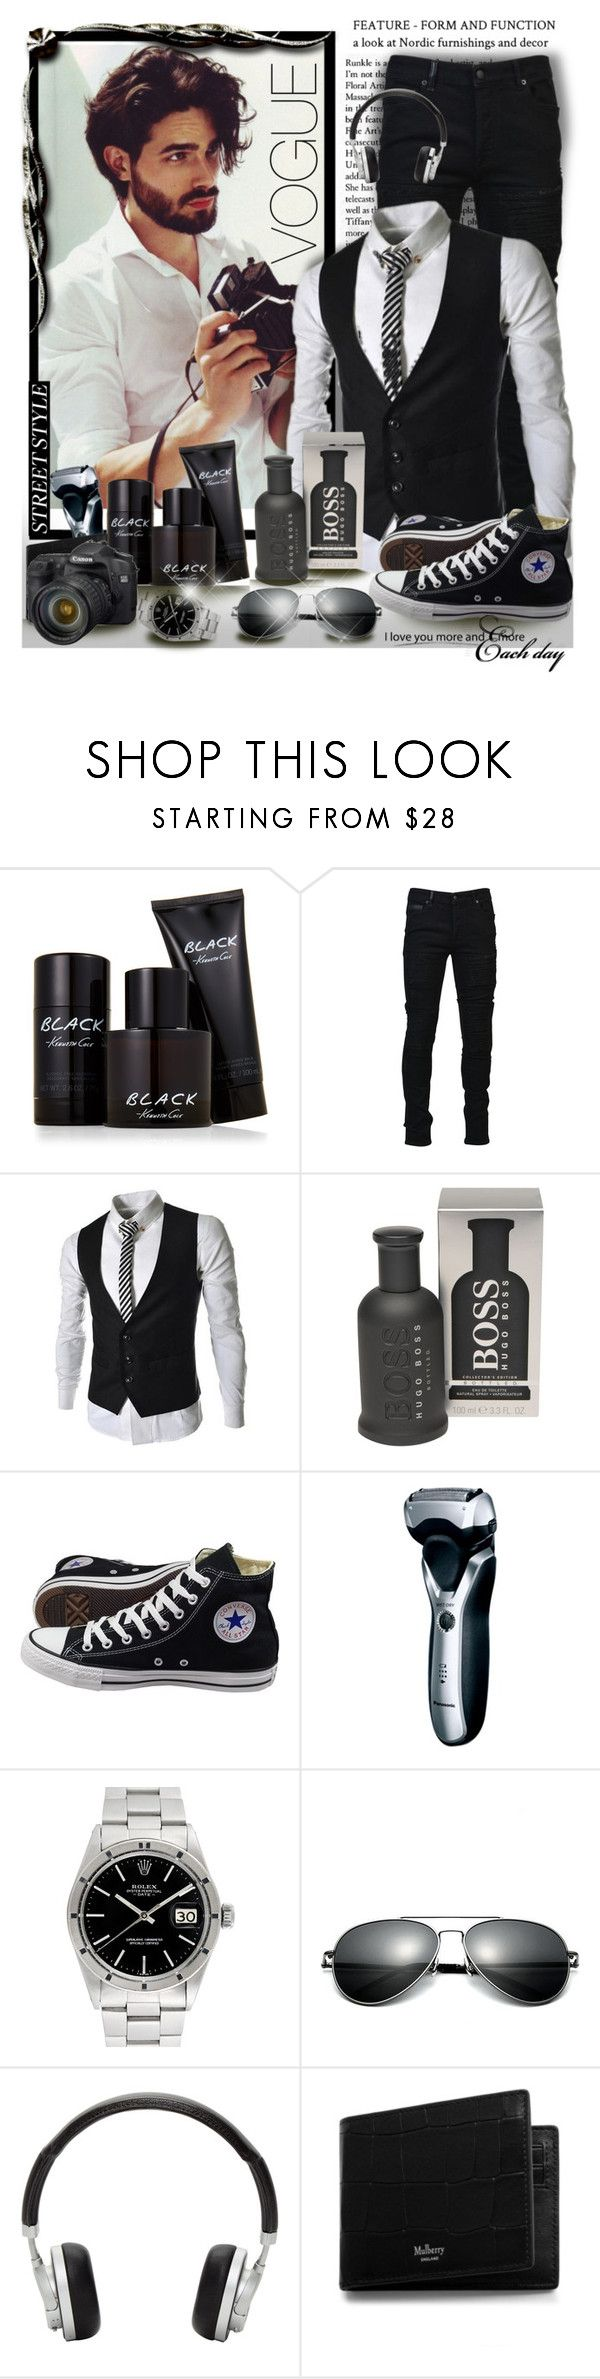 """""""Men's fashion ♥️"""" by gianna-pellegrini ❤ liked on Polyvore featuring Kenneth Cole, Marcelo Burlon, BOSS Hugo Boss, Converse, Panasonic, Rolex, Master & Dynamic, Mulberry, men's fashion and menswear"""